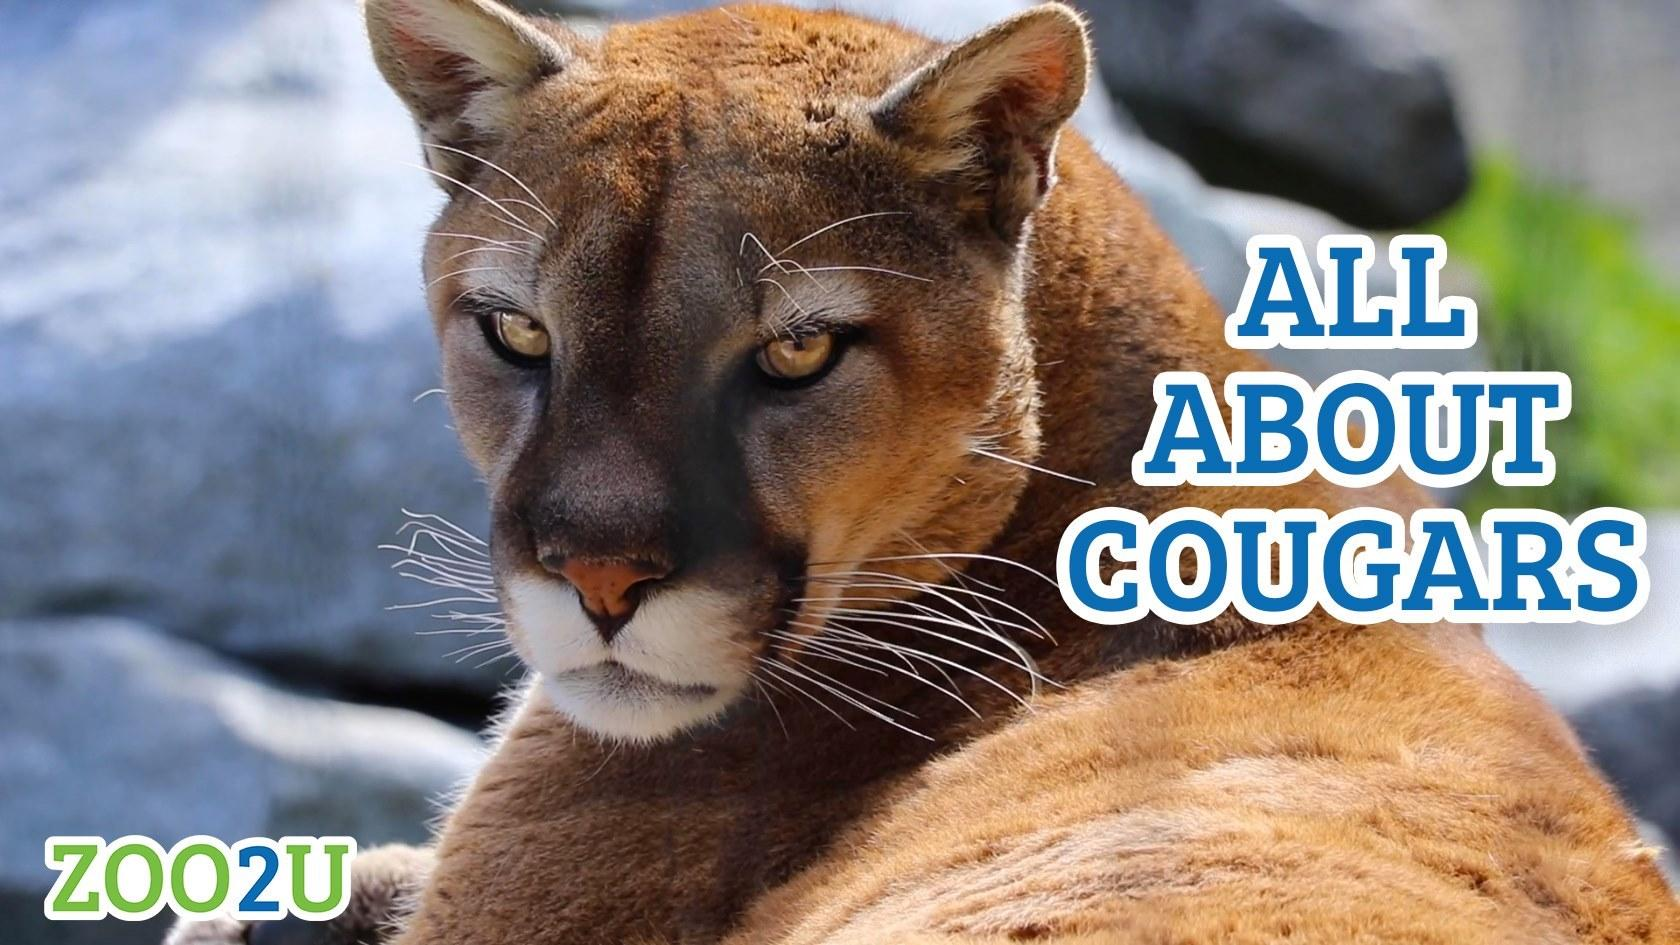 all about cougars button